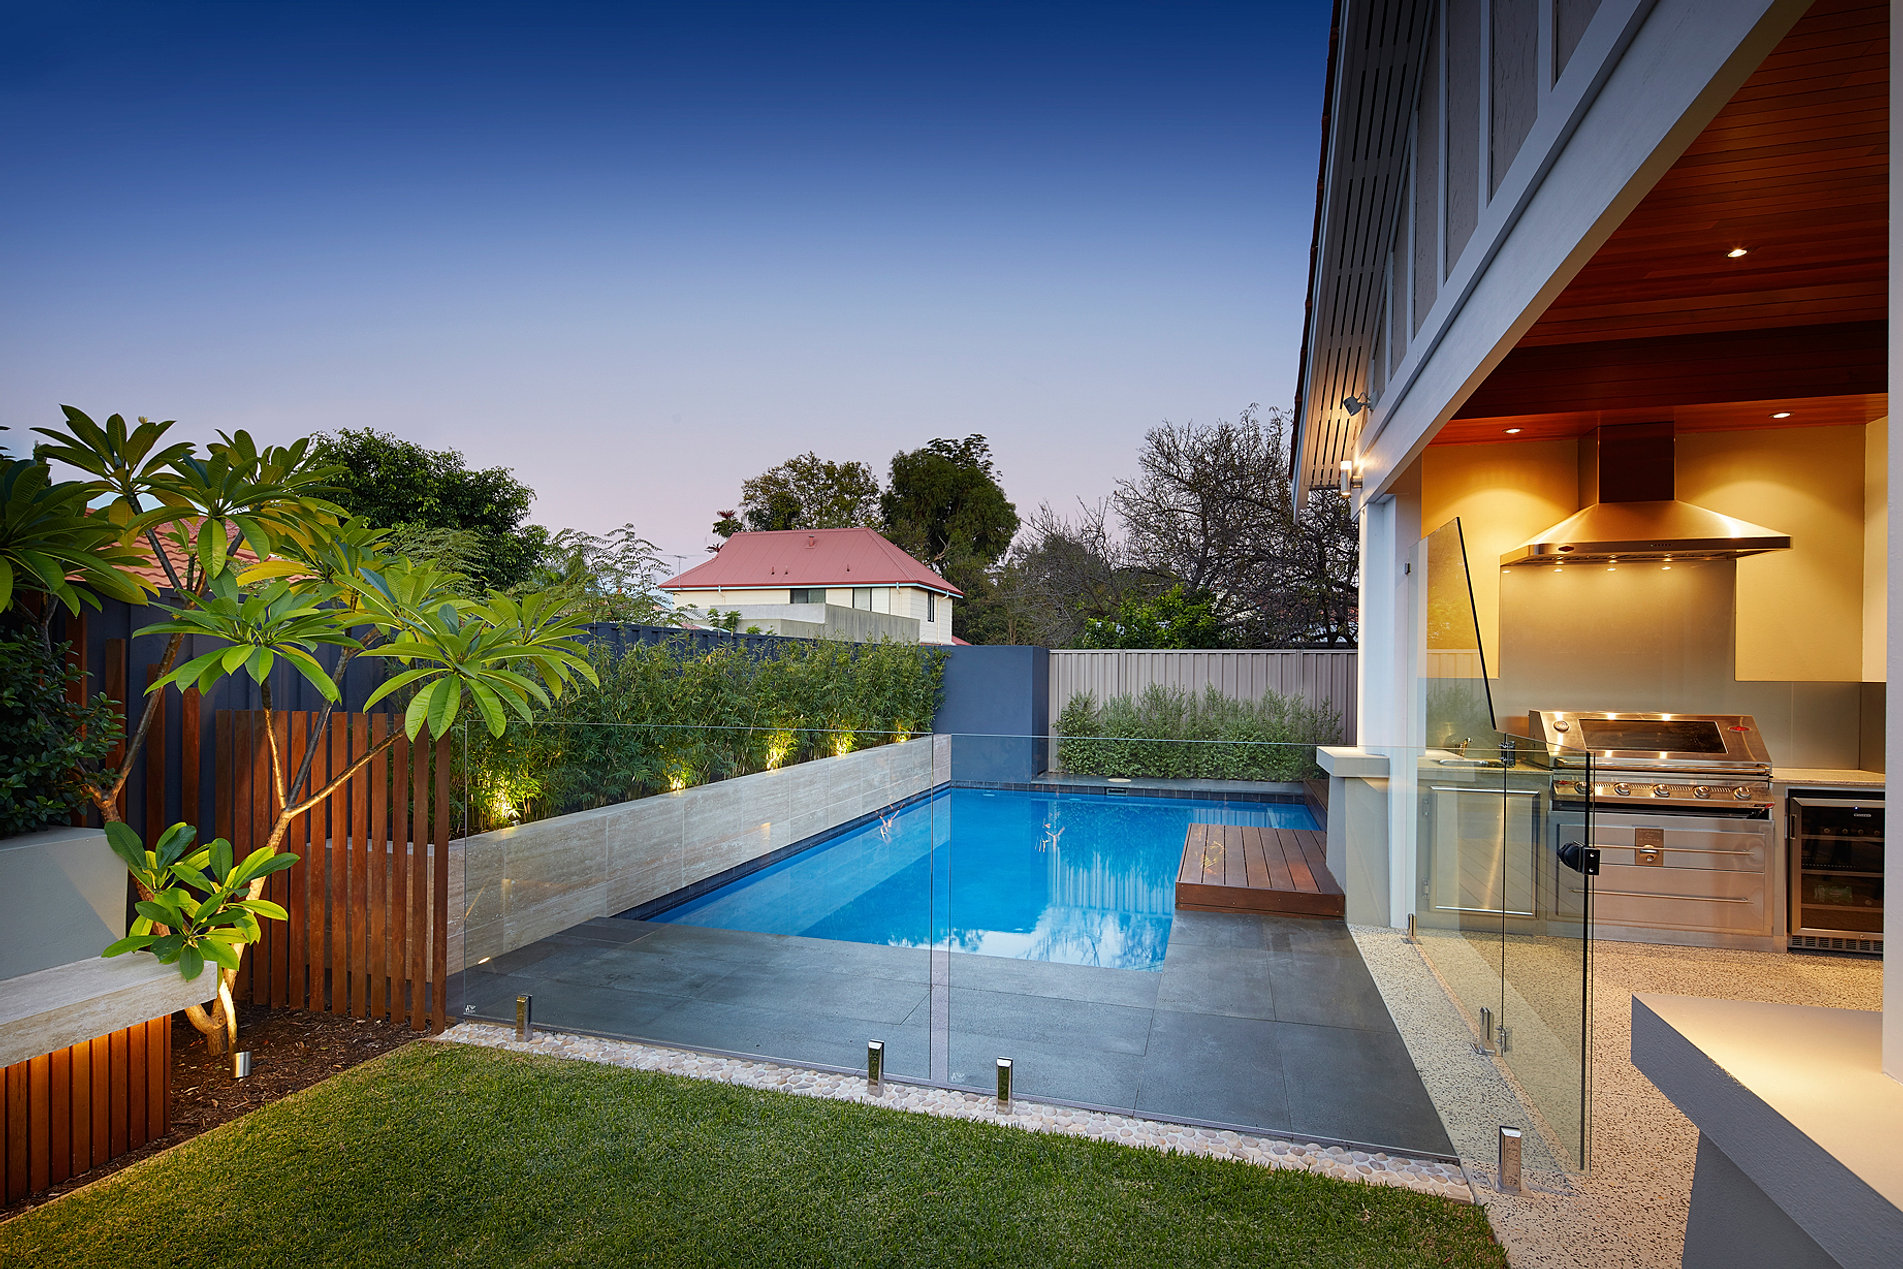 Principal pools landscapes lanscape design perth for Pool design ideas australia